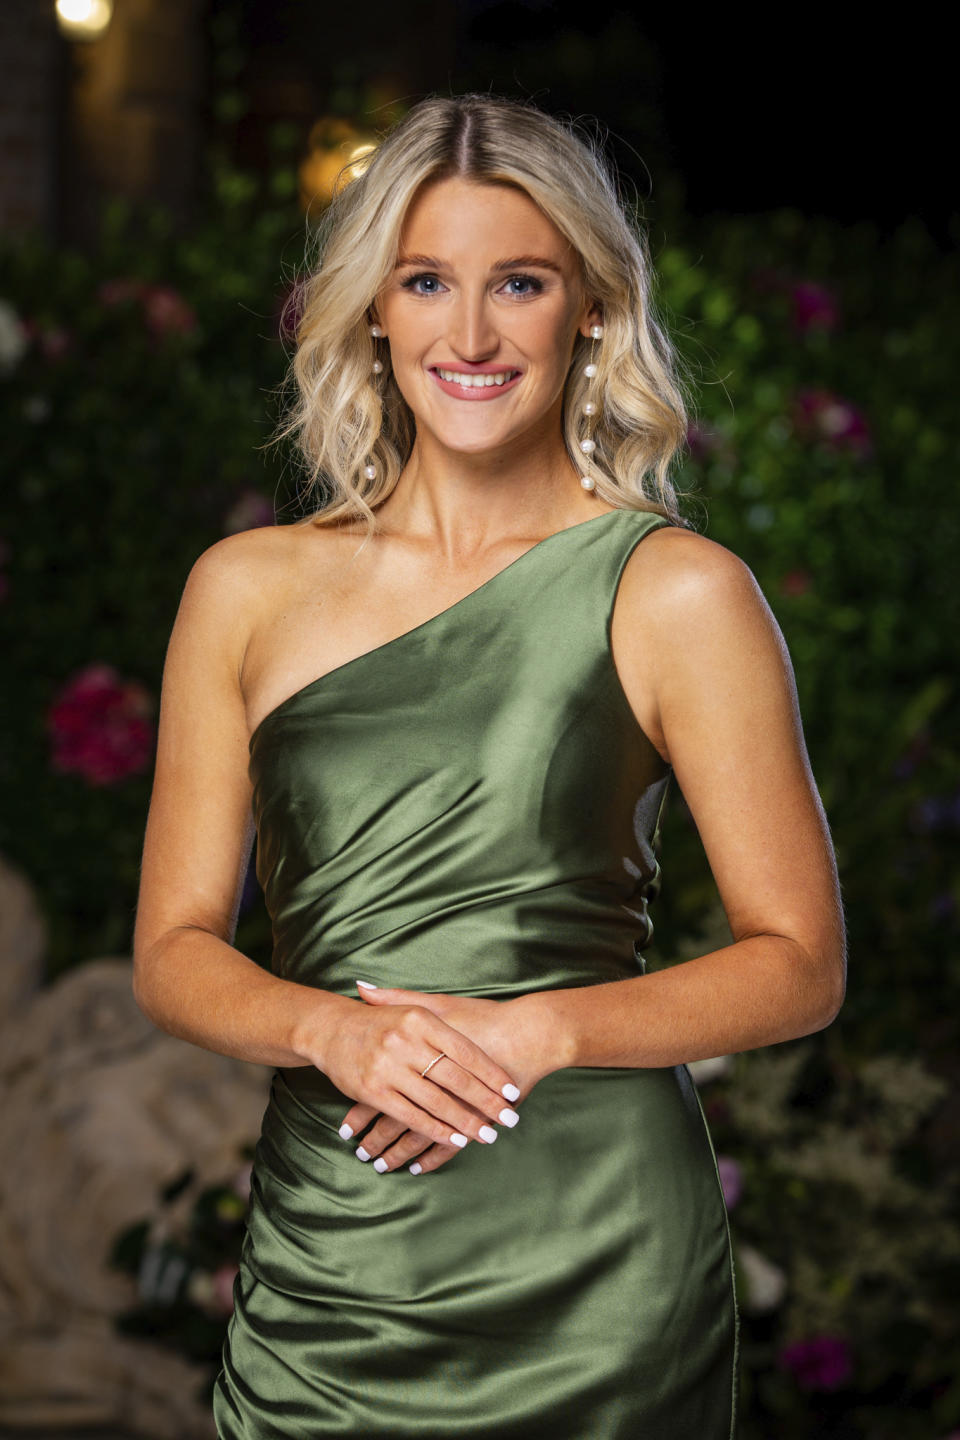 The Bachelor 2021 contestant Lily